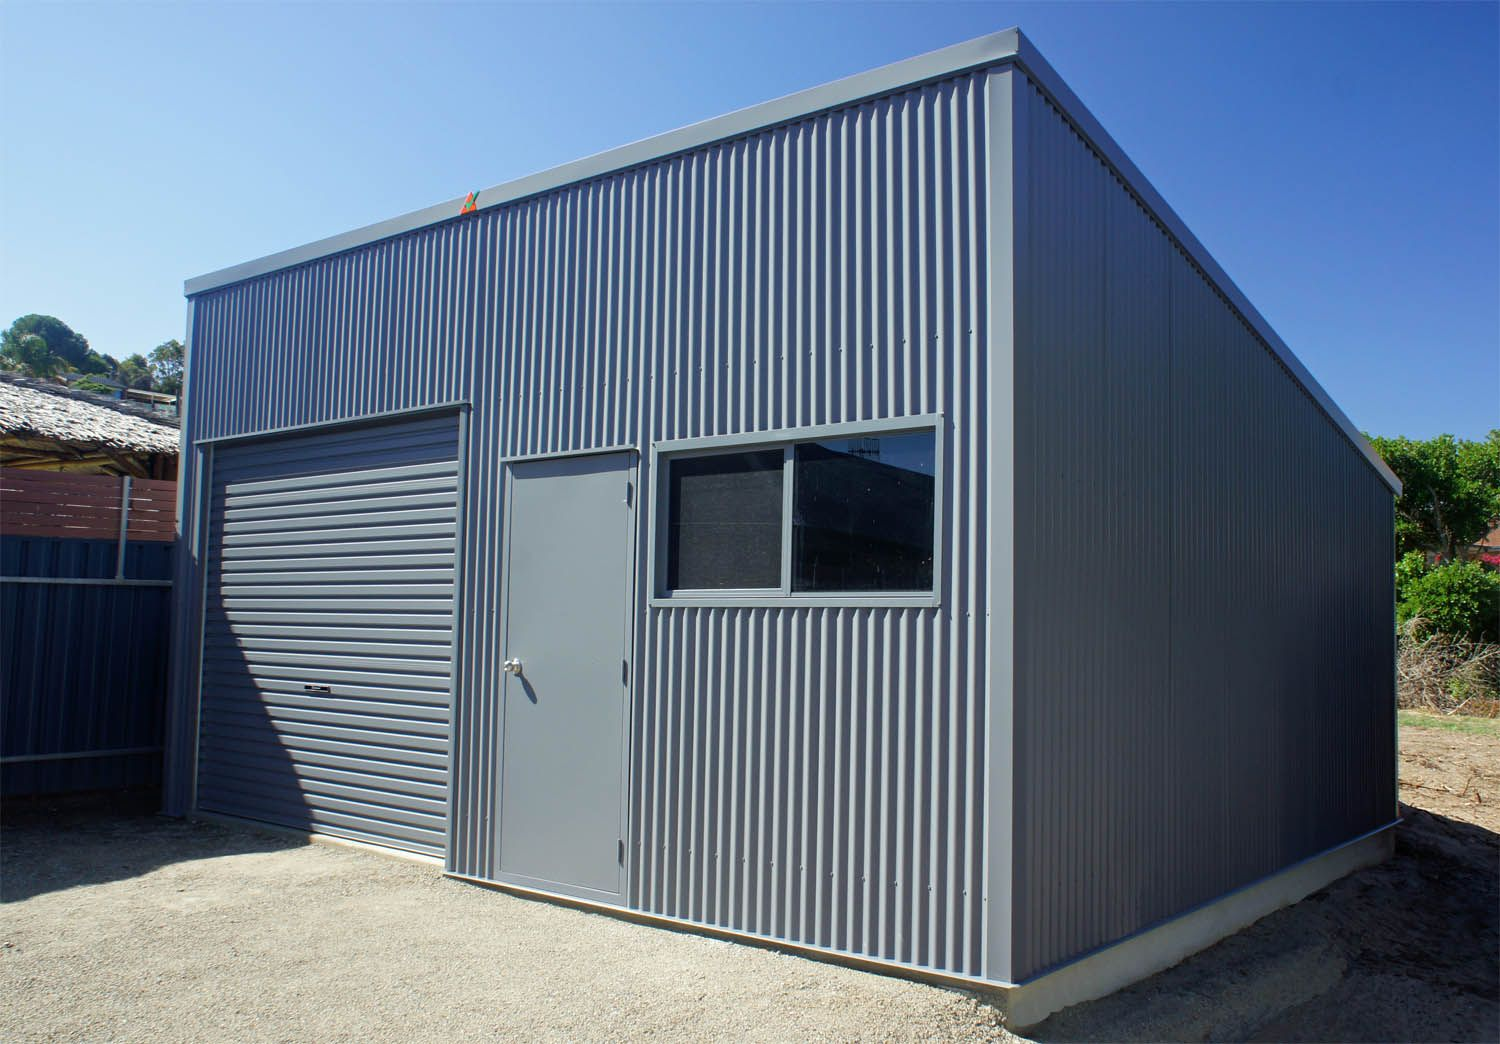 A Skillion Shed In Colorbond Basalt With A 10 Degree Roof Pitch The Roller Door Is 2400 Mm H X 2750 Mm W Skillion Roof Double Carport Patio Design